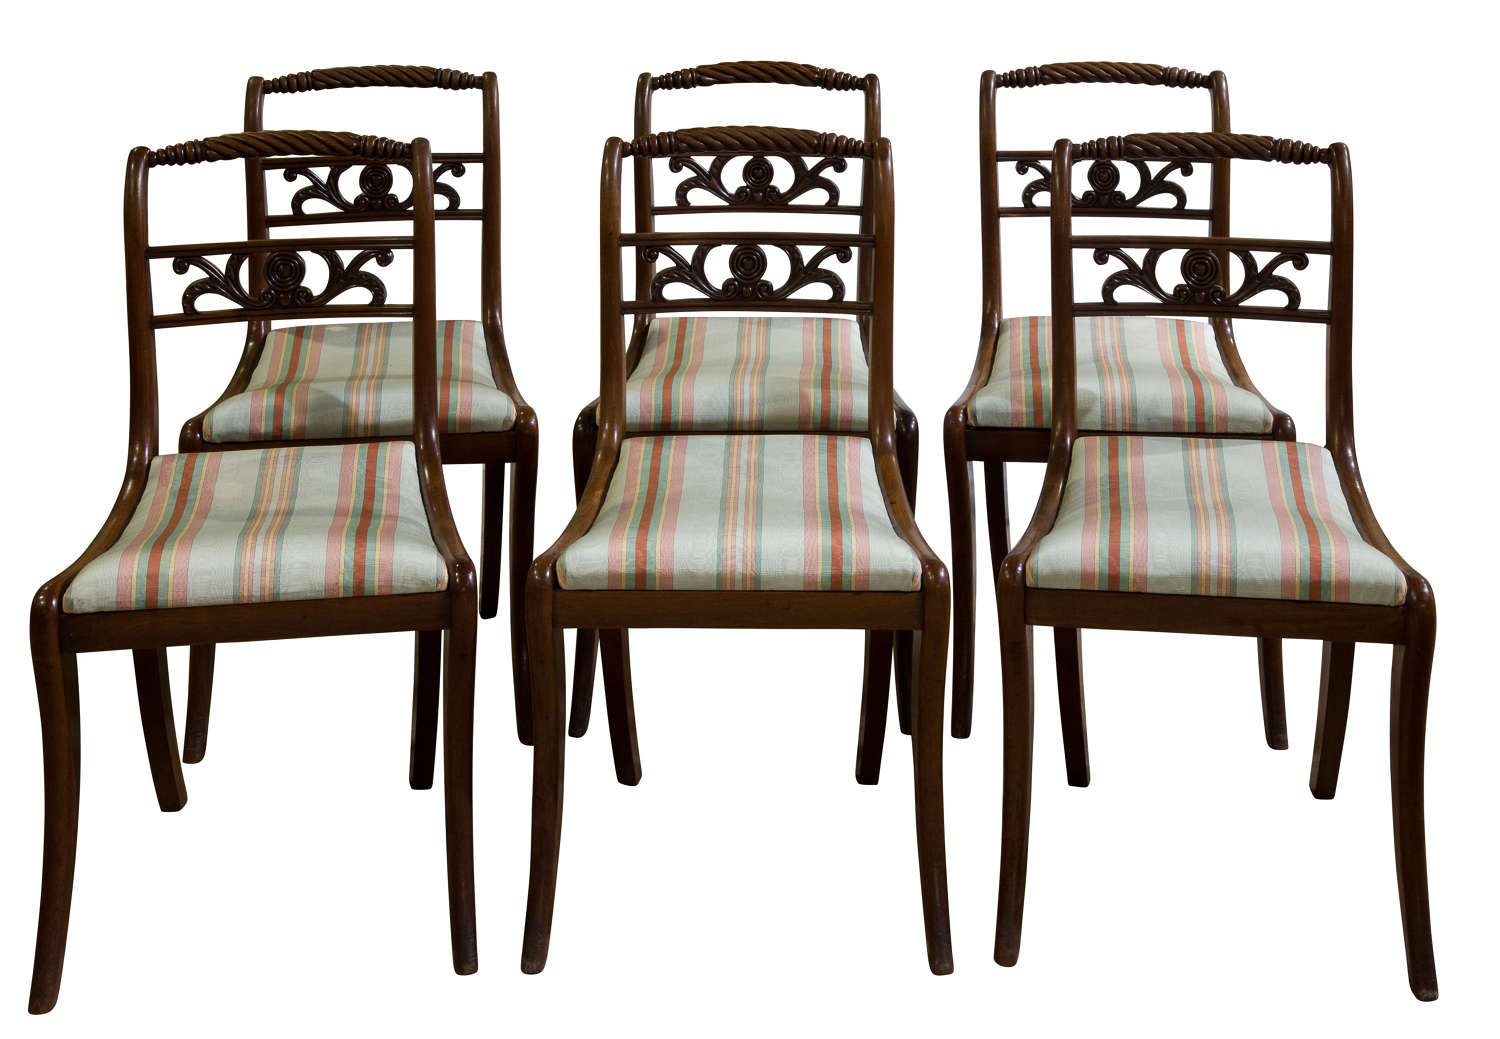 Set of 6 Regency dining chairs c1820